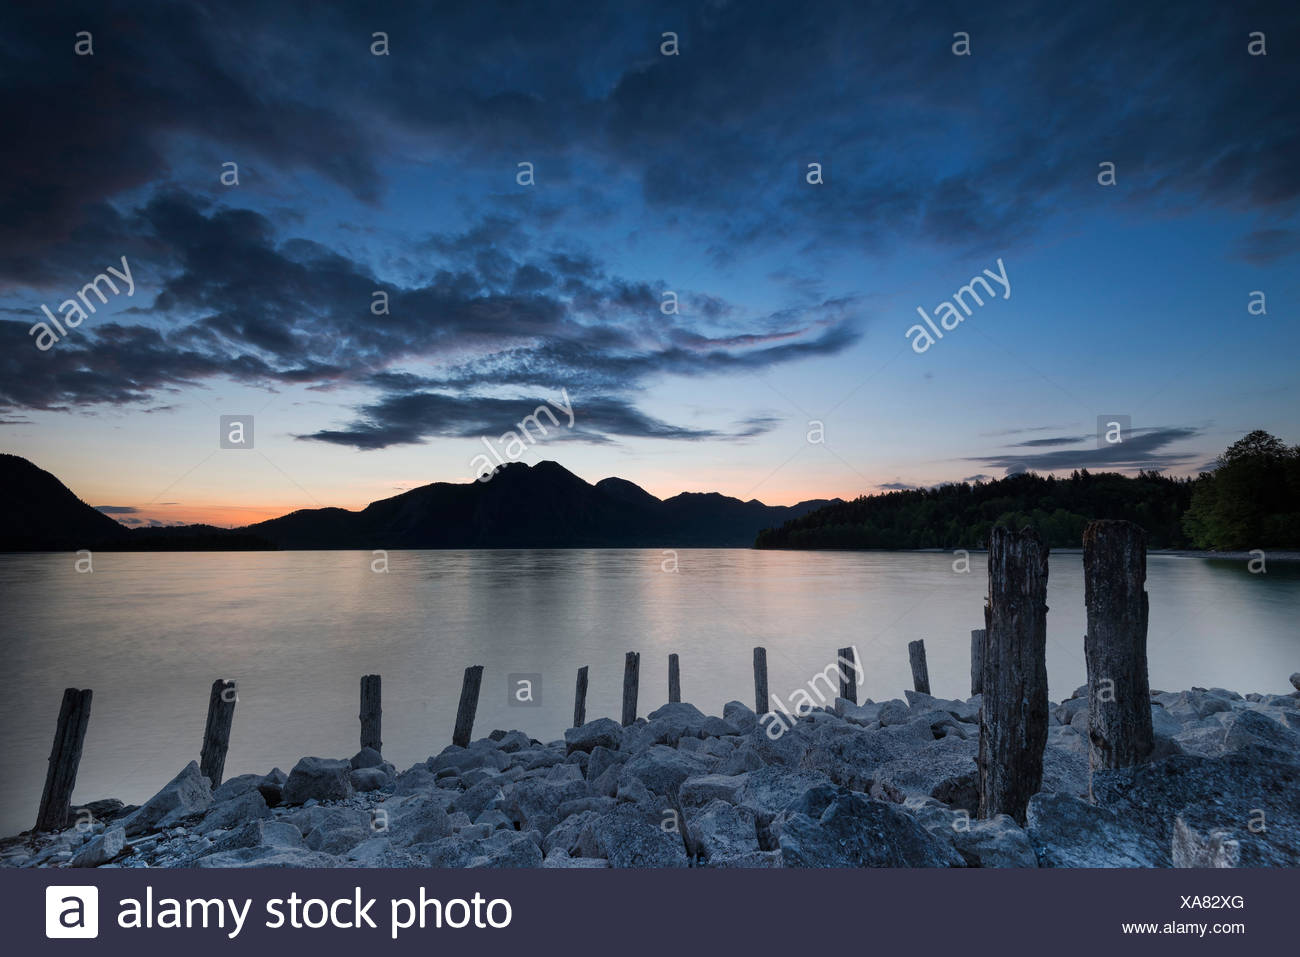 bank reinforcement of the Walchensee (Lake Walchen), in the background hazy contours of the Herzogstand (mountain) and Heimgarten in the Bavarian foothills. Longtime exposure shot shortly after sundown - Stock Image